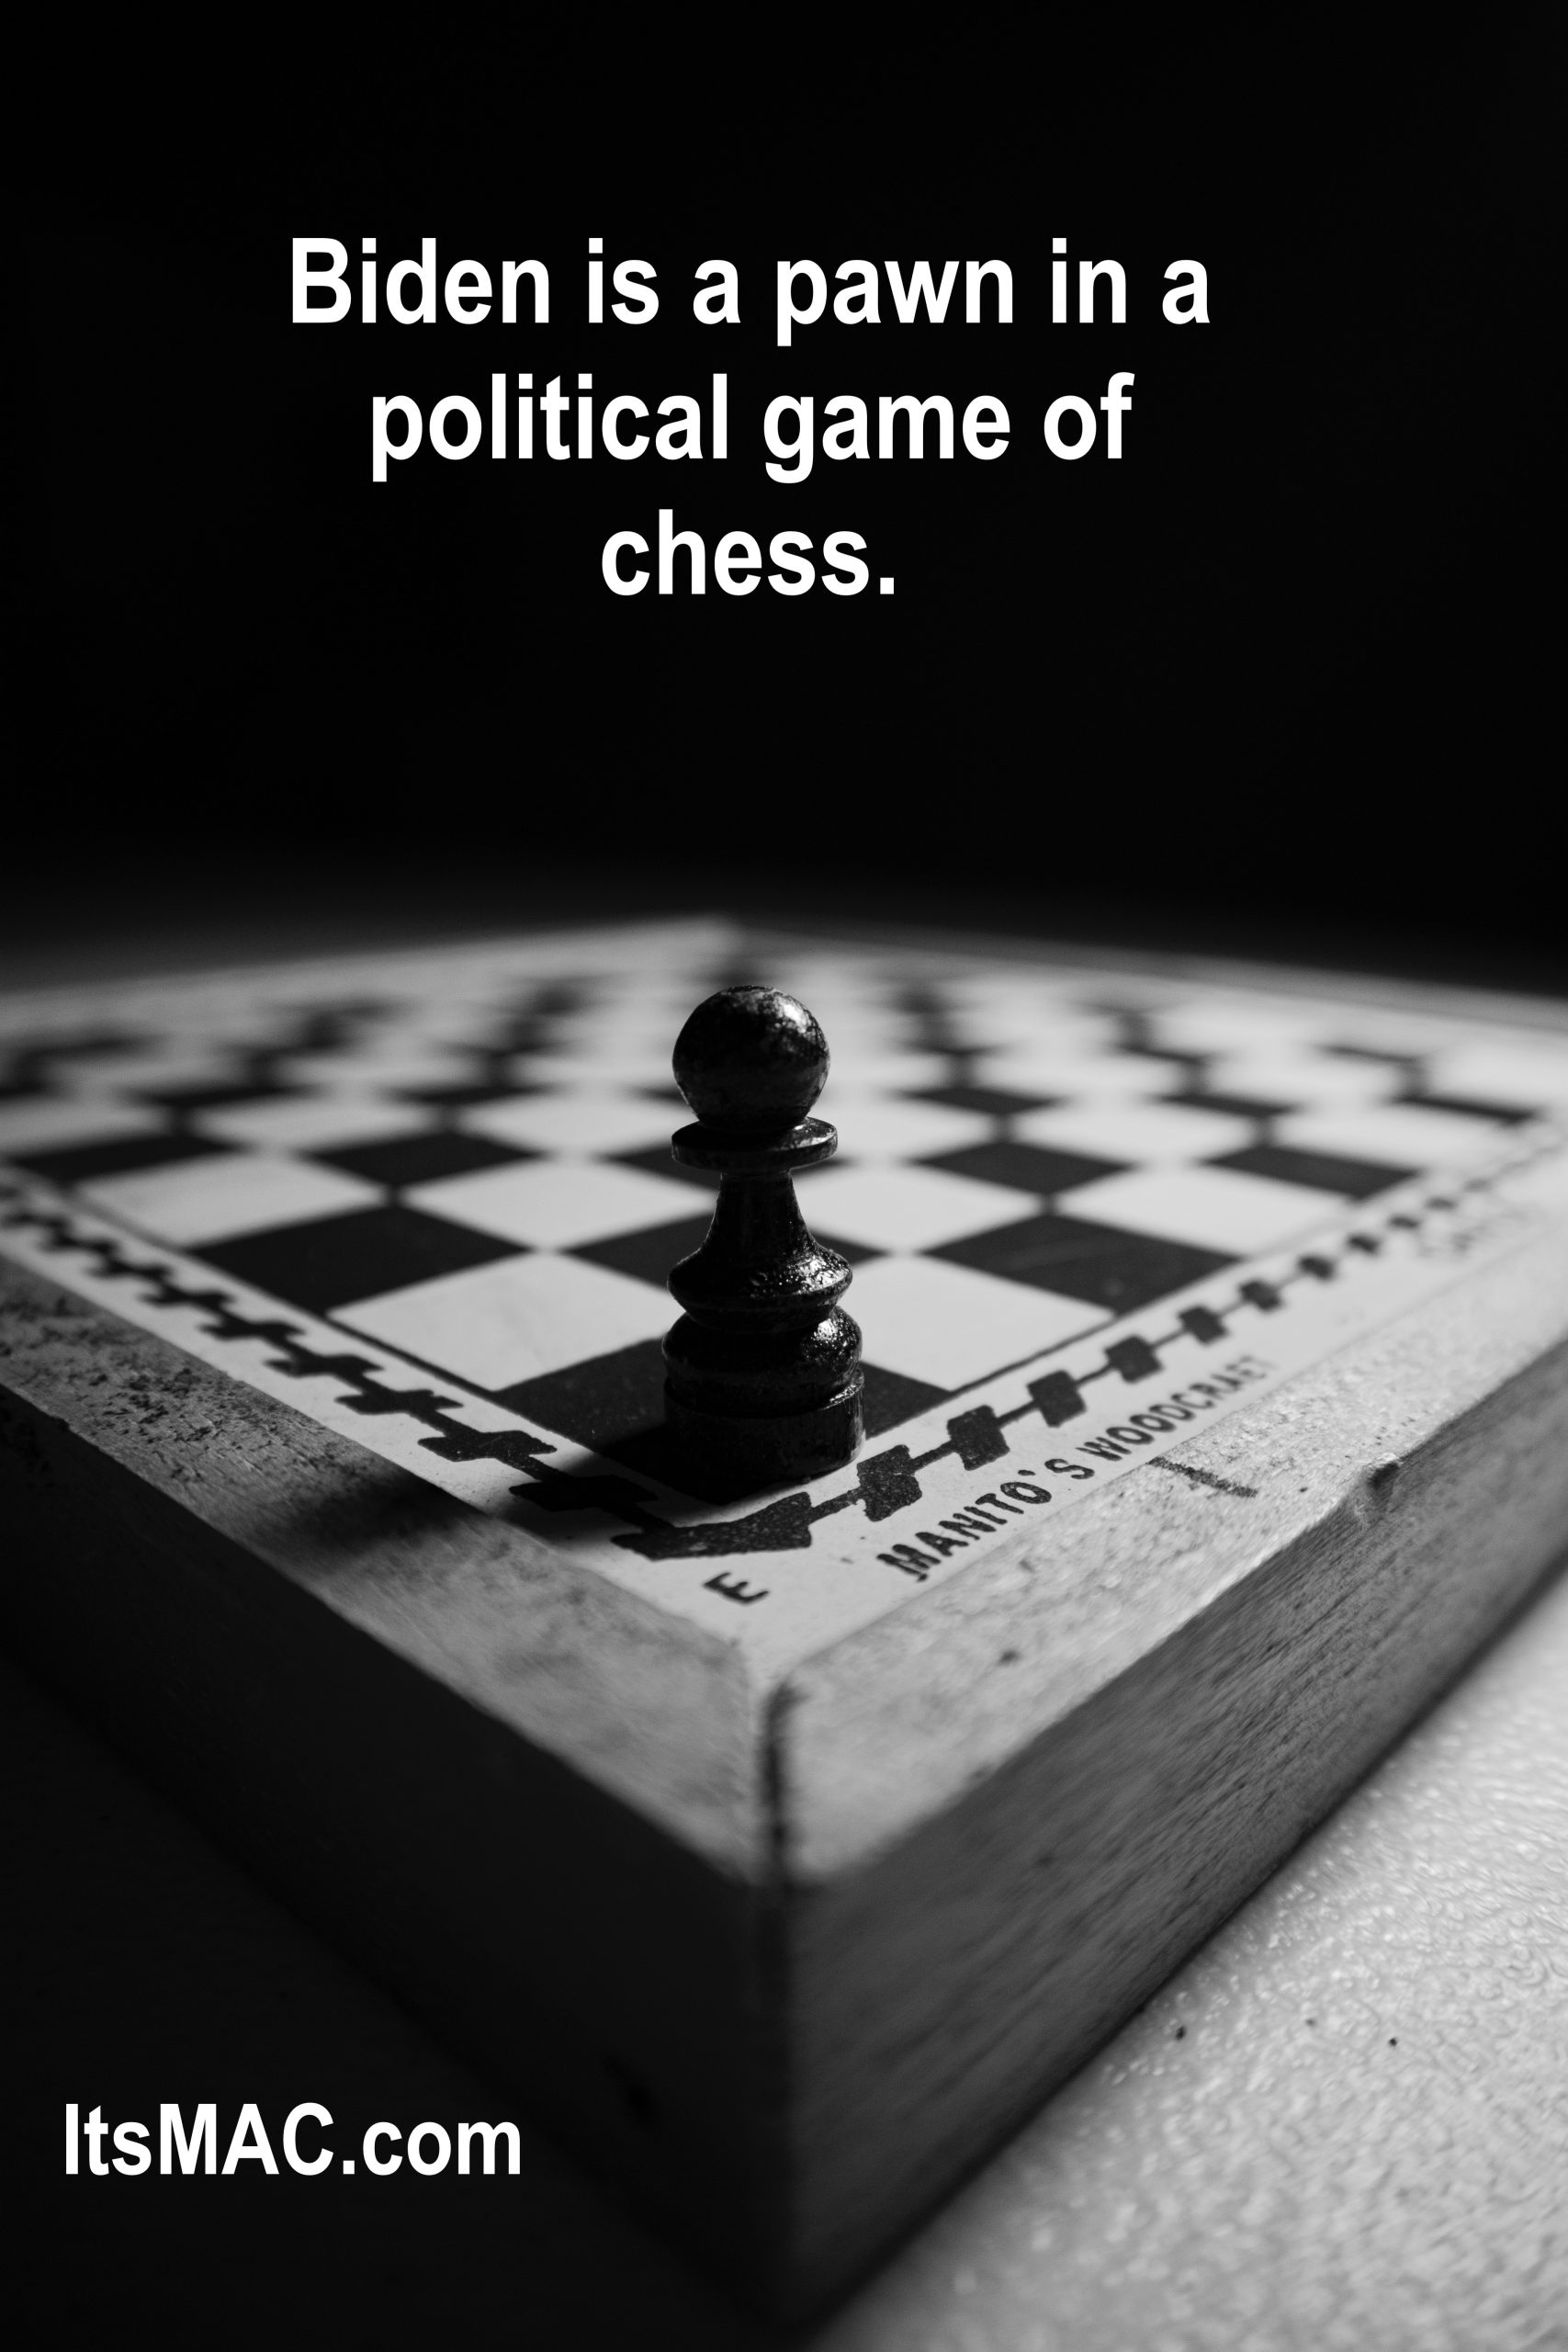 BIDEN IS A PAWN! THE DEMOCRATS WANT TO BURN DOWN REPUBLICANS UNTIL THERE ARE NO SURVIVORS!